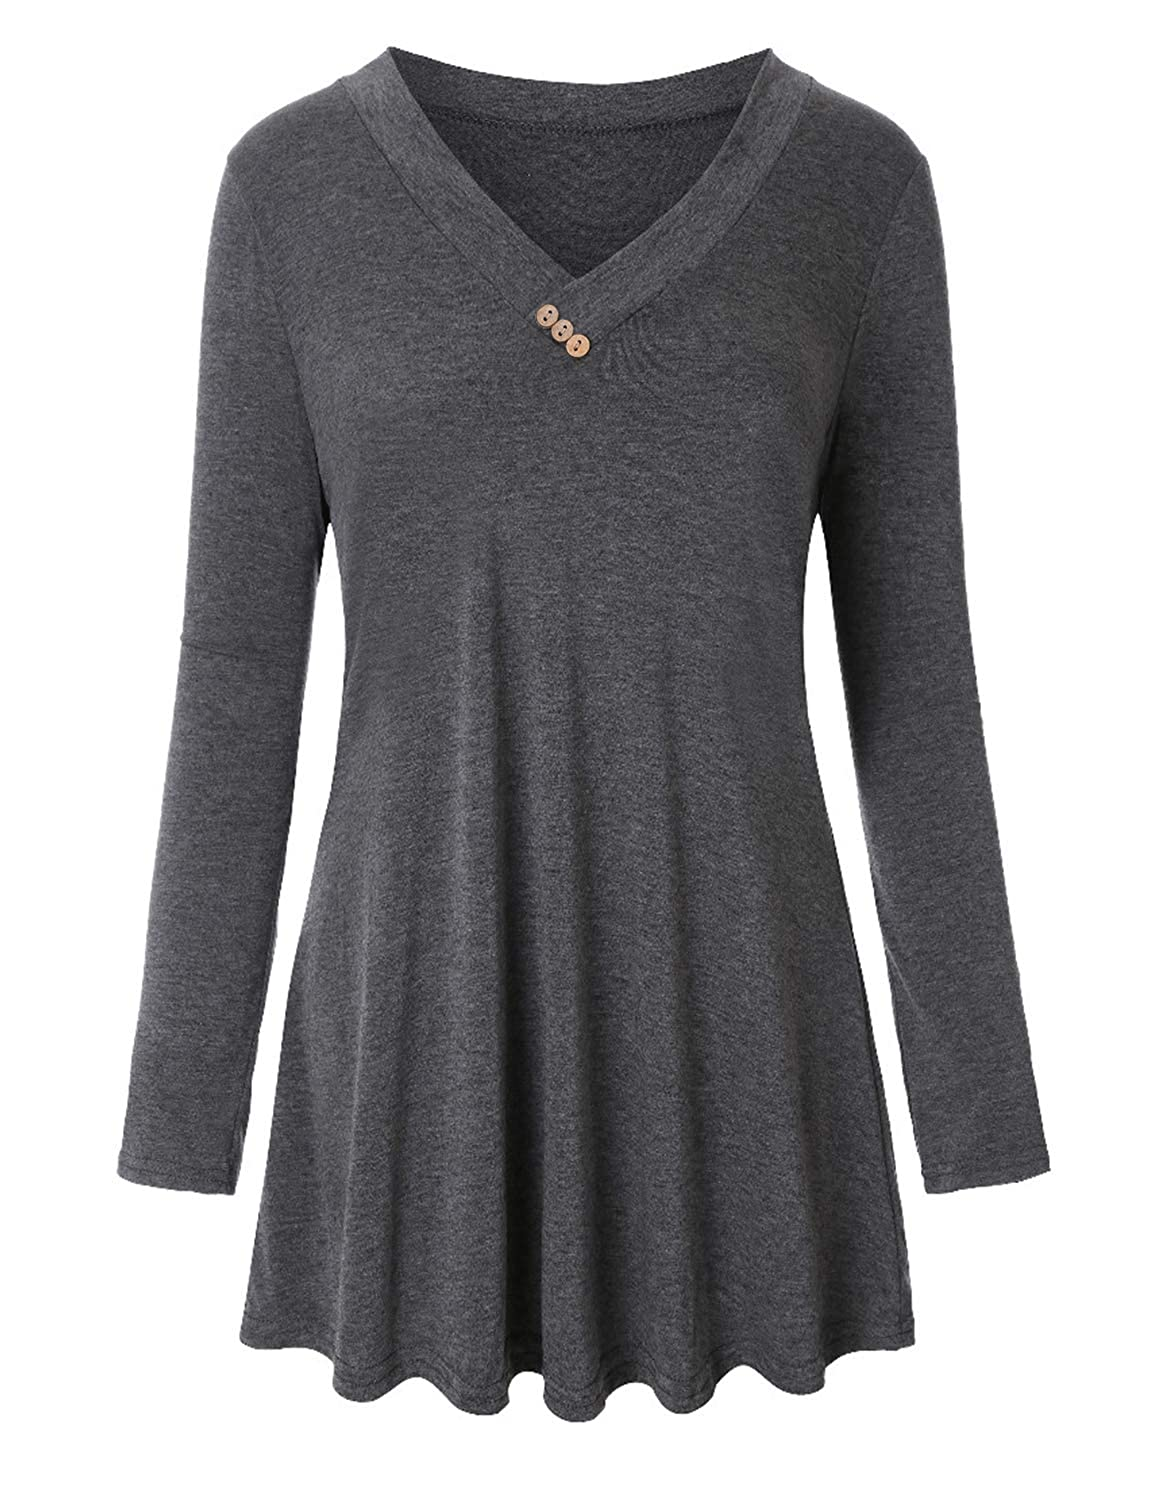 9e160182052 Material:35% Cotton,60% Polyester,5% Spandex. Soft and comfortable fabric  with stretch. ????Design: 2018 Fashion Tunic Tops/ V Neck Blouses/Button ...